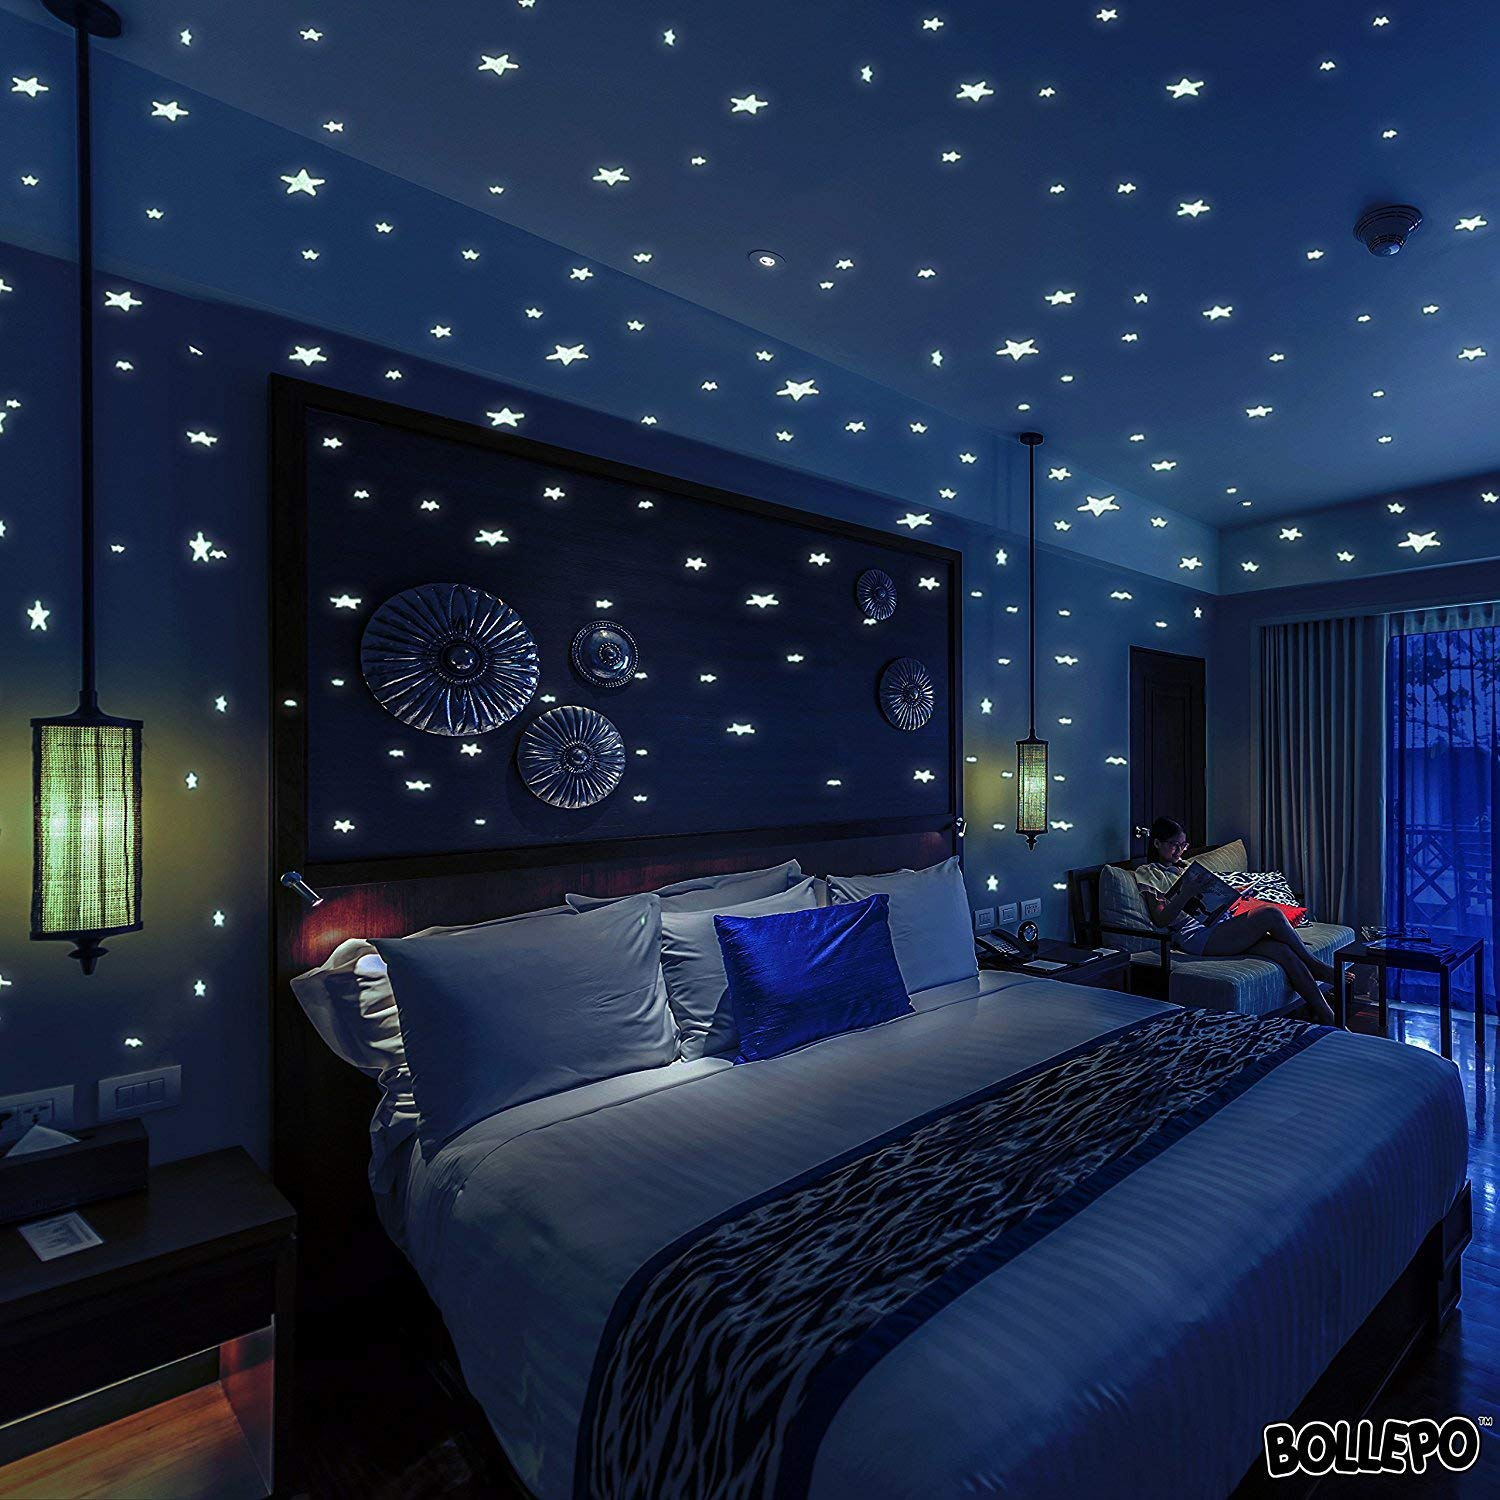 Stars Room Decor Bollepo Glow In The Dark Star And Dots 332 3d Wall Stickers For Kids Bedroom And Room Ceiling Gift Beautiful Glowing Wall Decals Stars